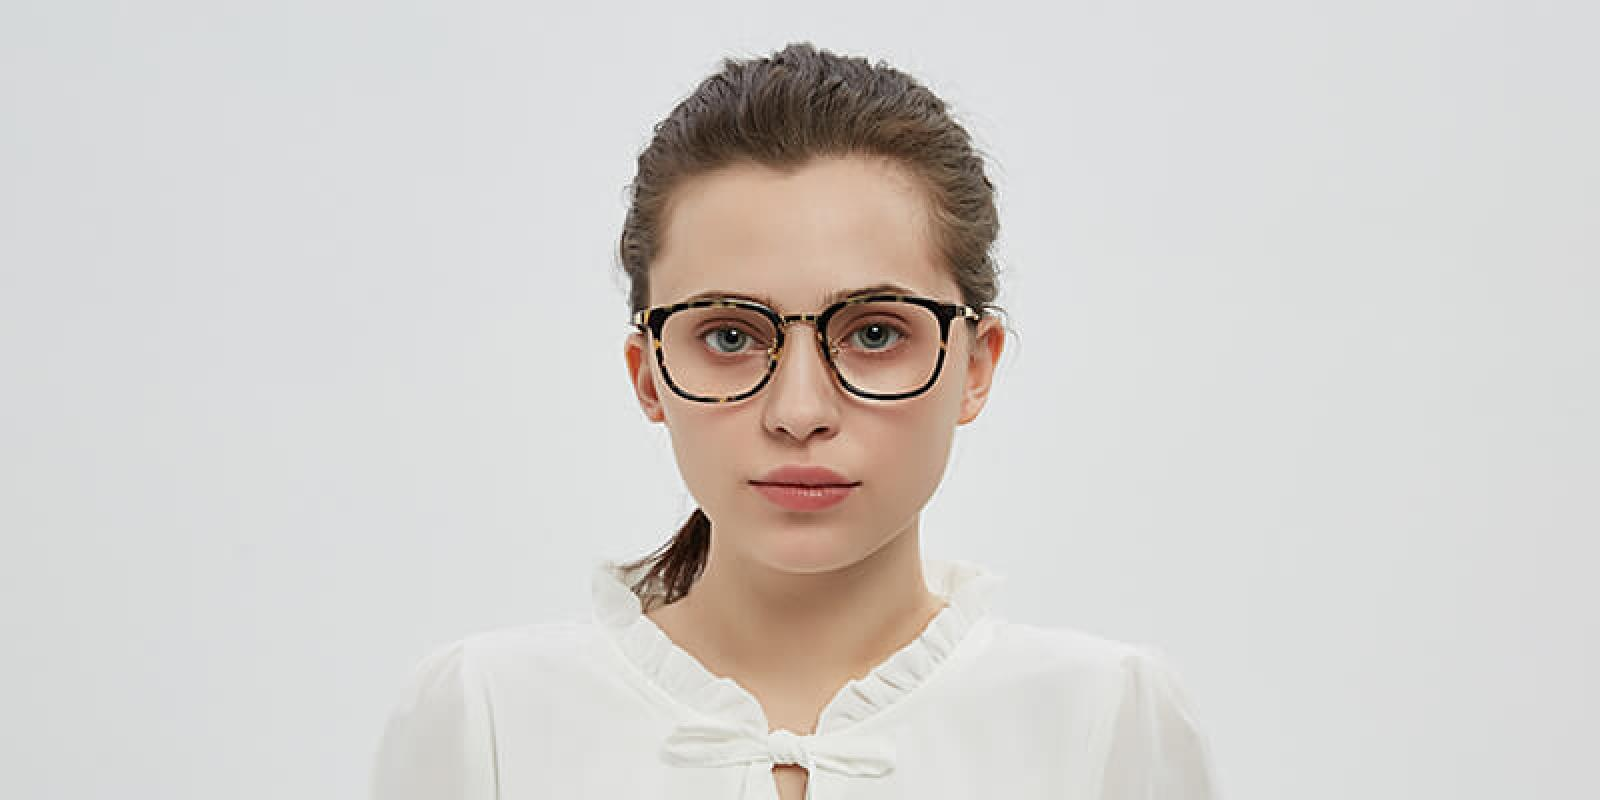 Keronito-Leopard-Metal-Eyeglasses-detail1